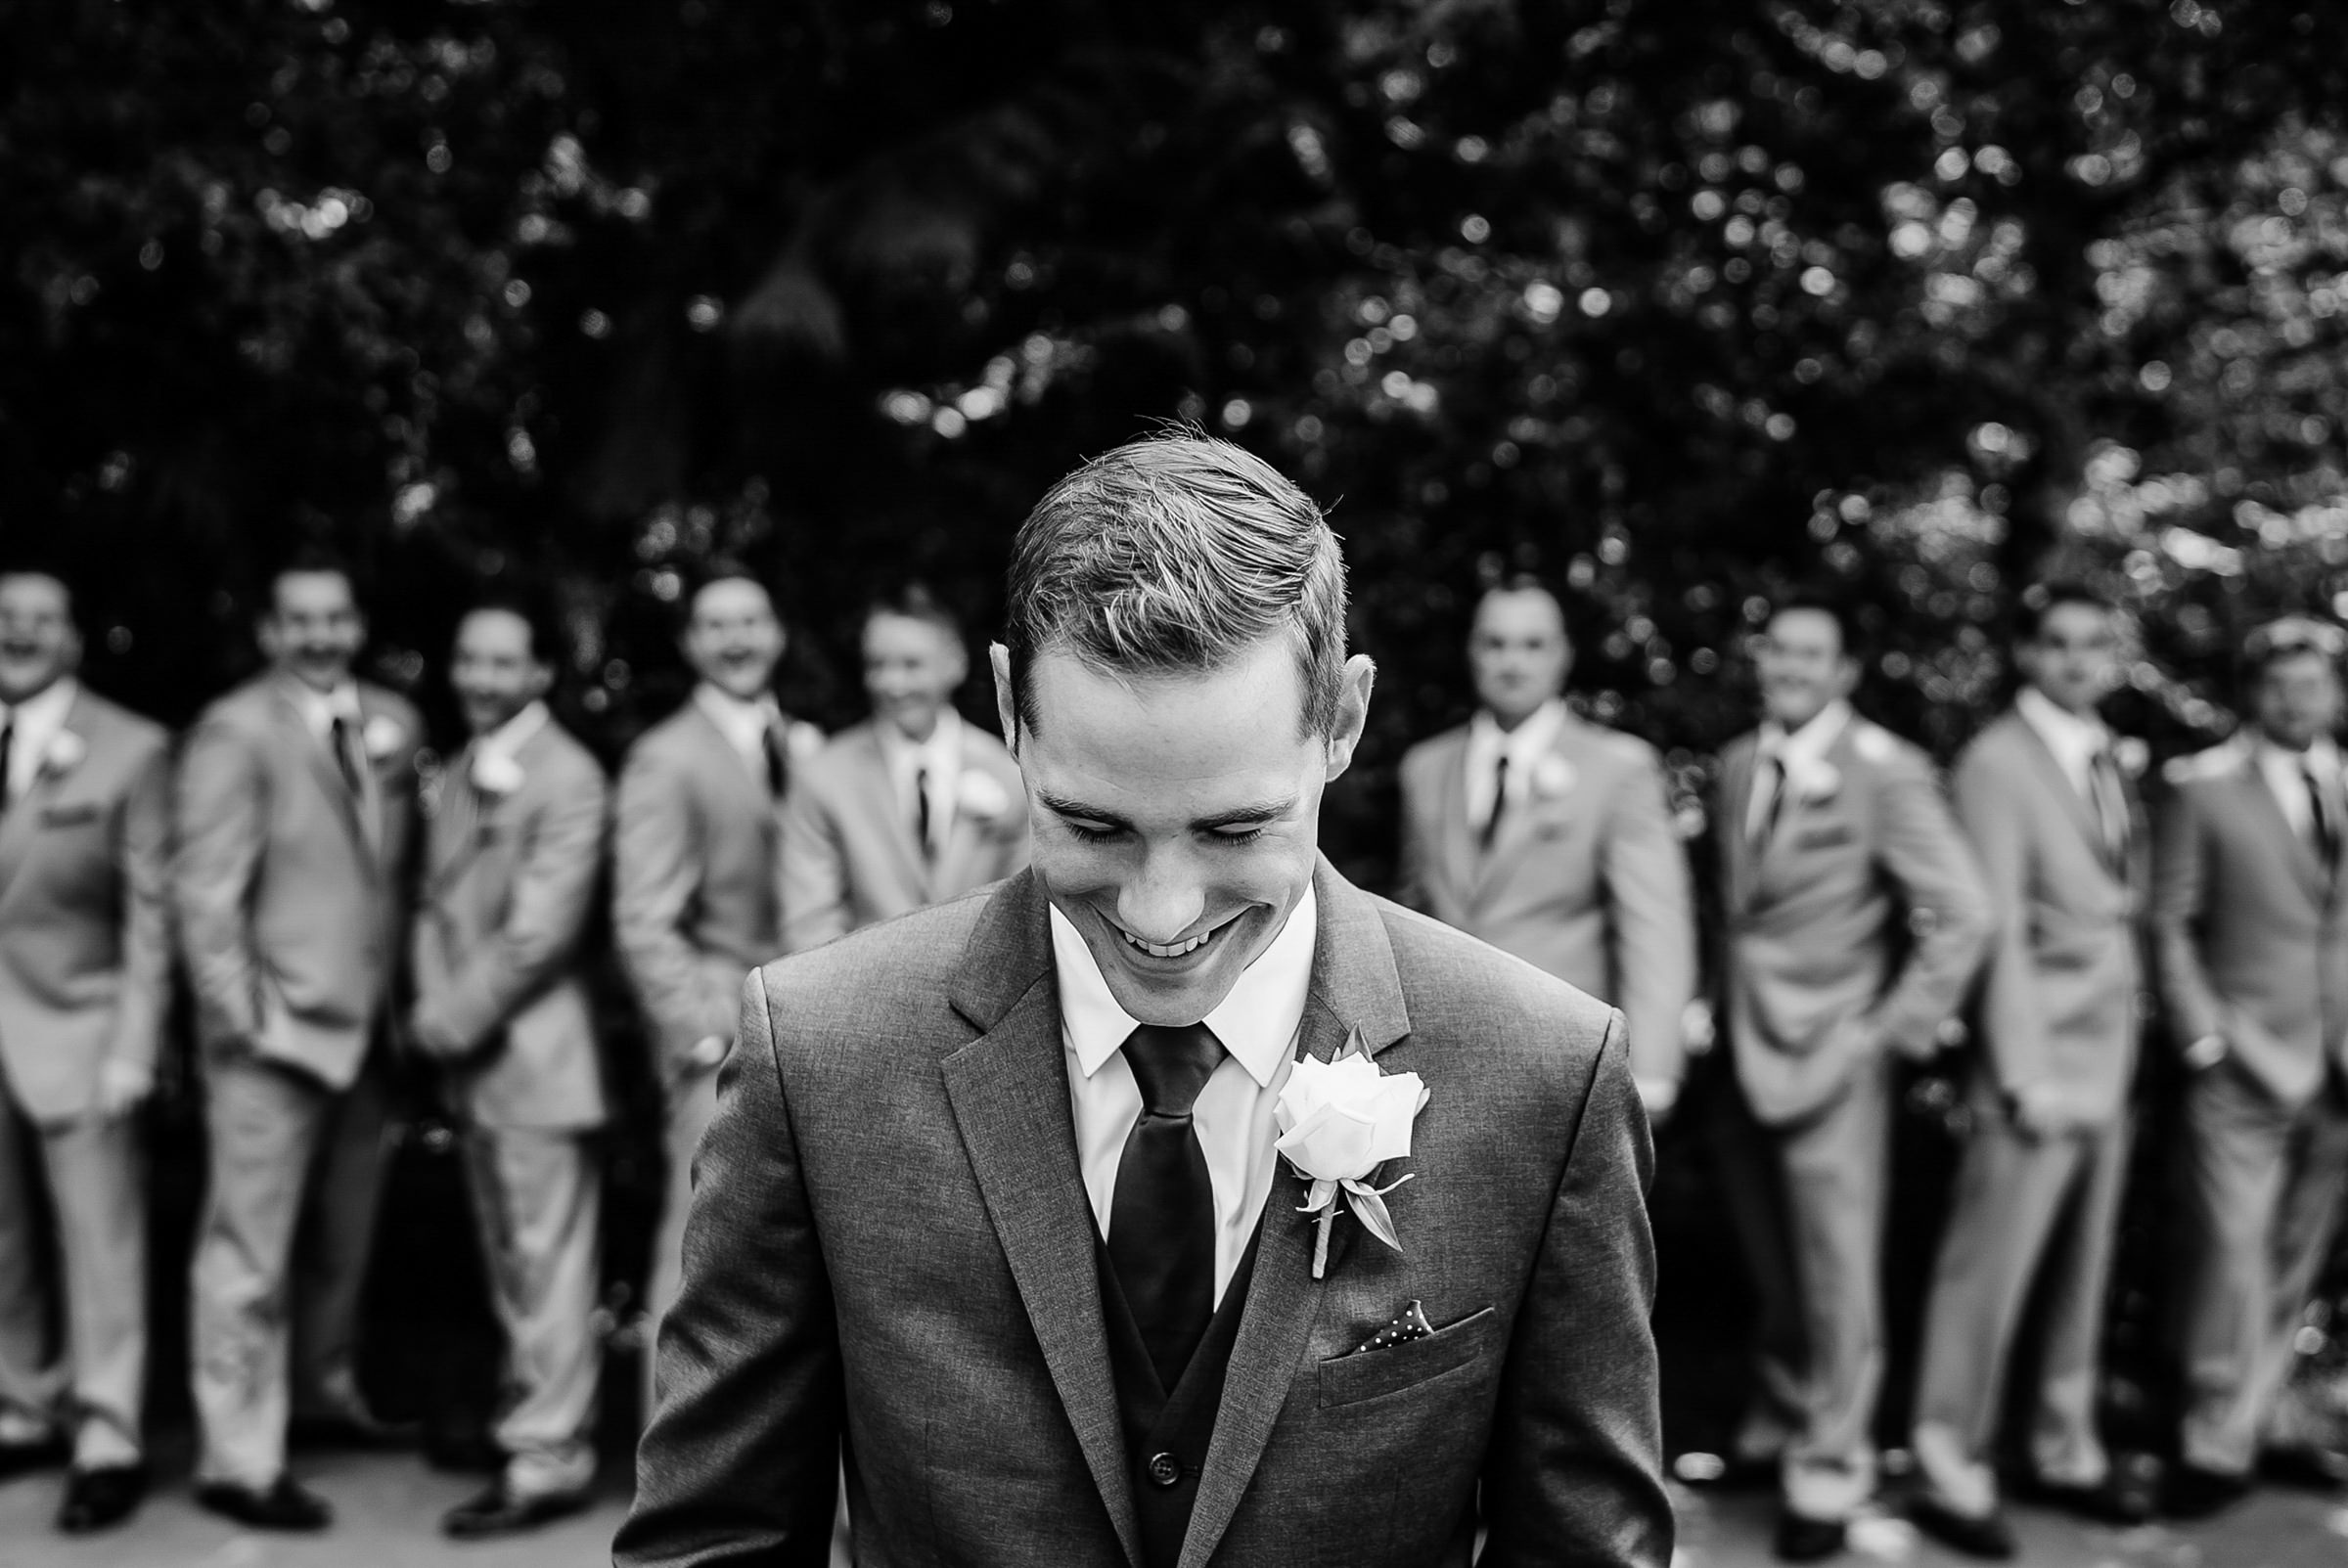 groom-portrait-against-line-of-groomsmen-sasha-reiko-photography